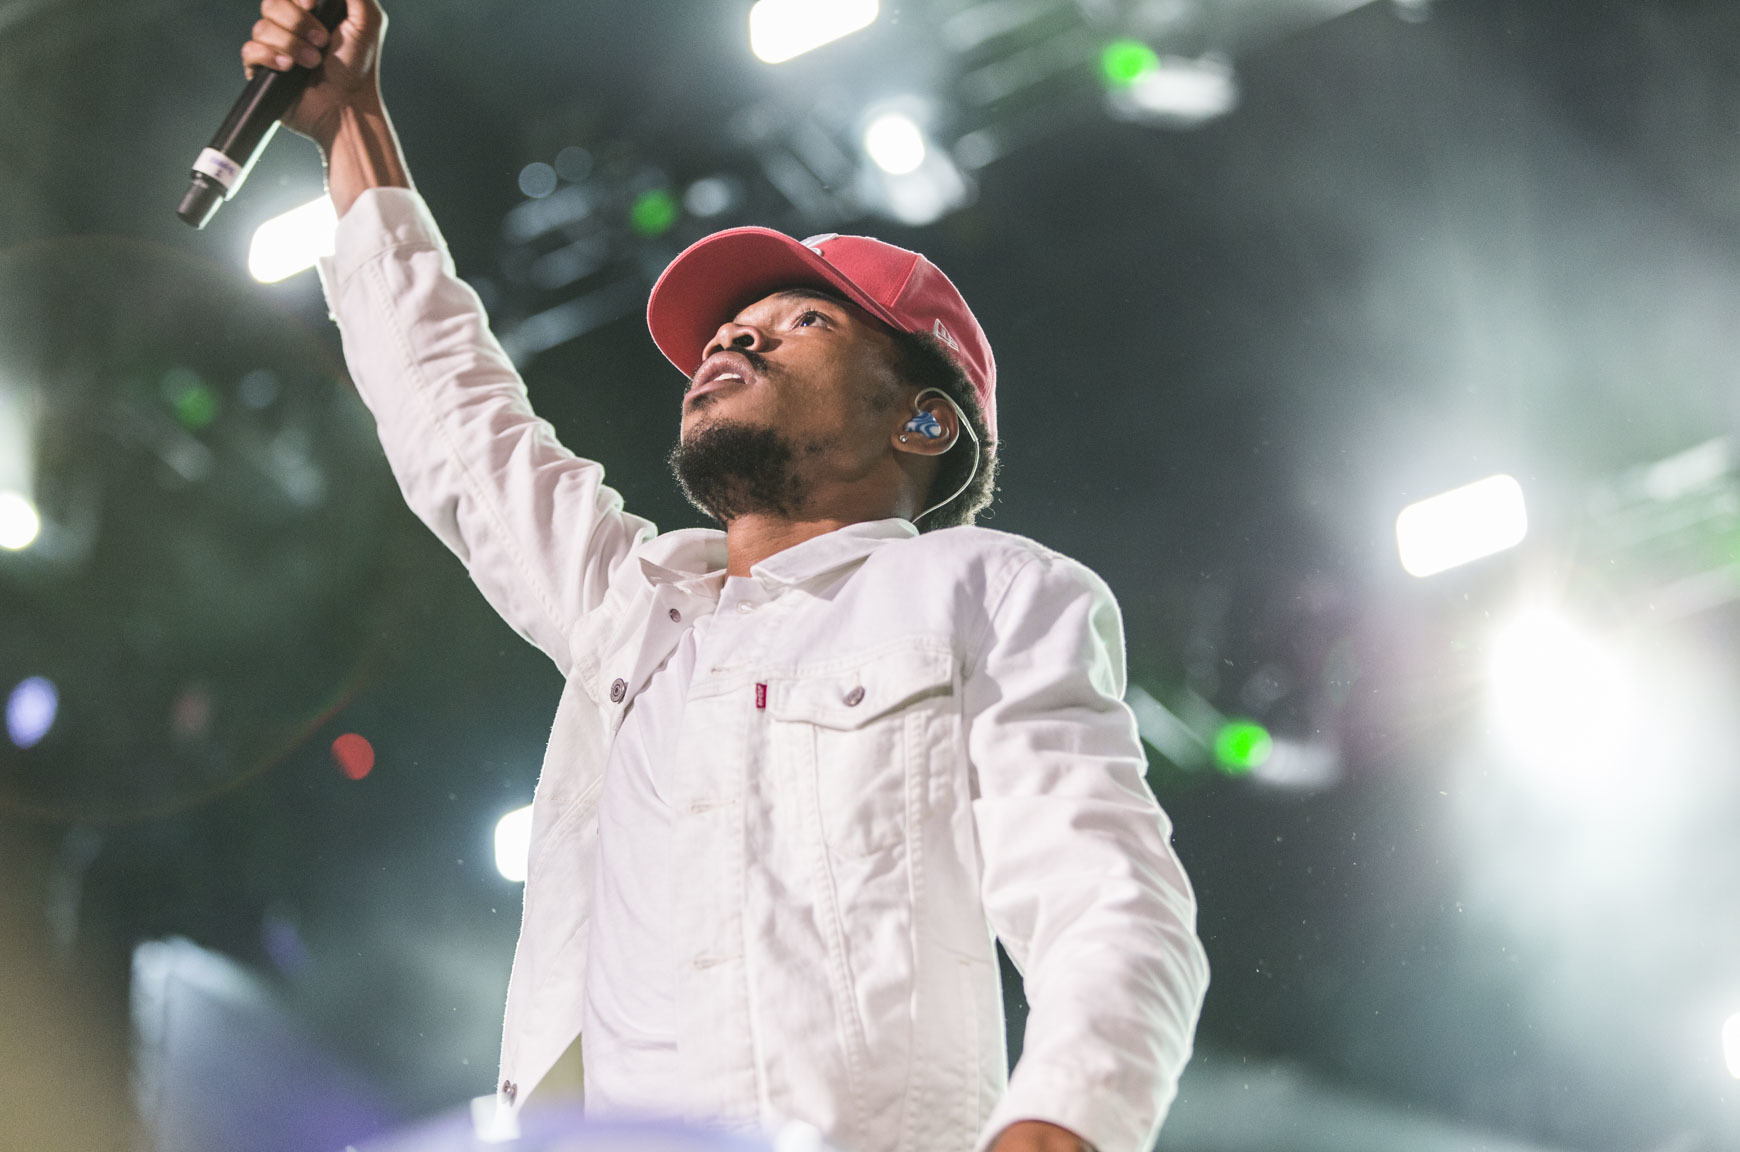 Give Chicago another hip-hop music festival like Chance's